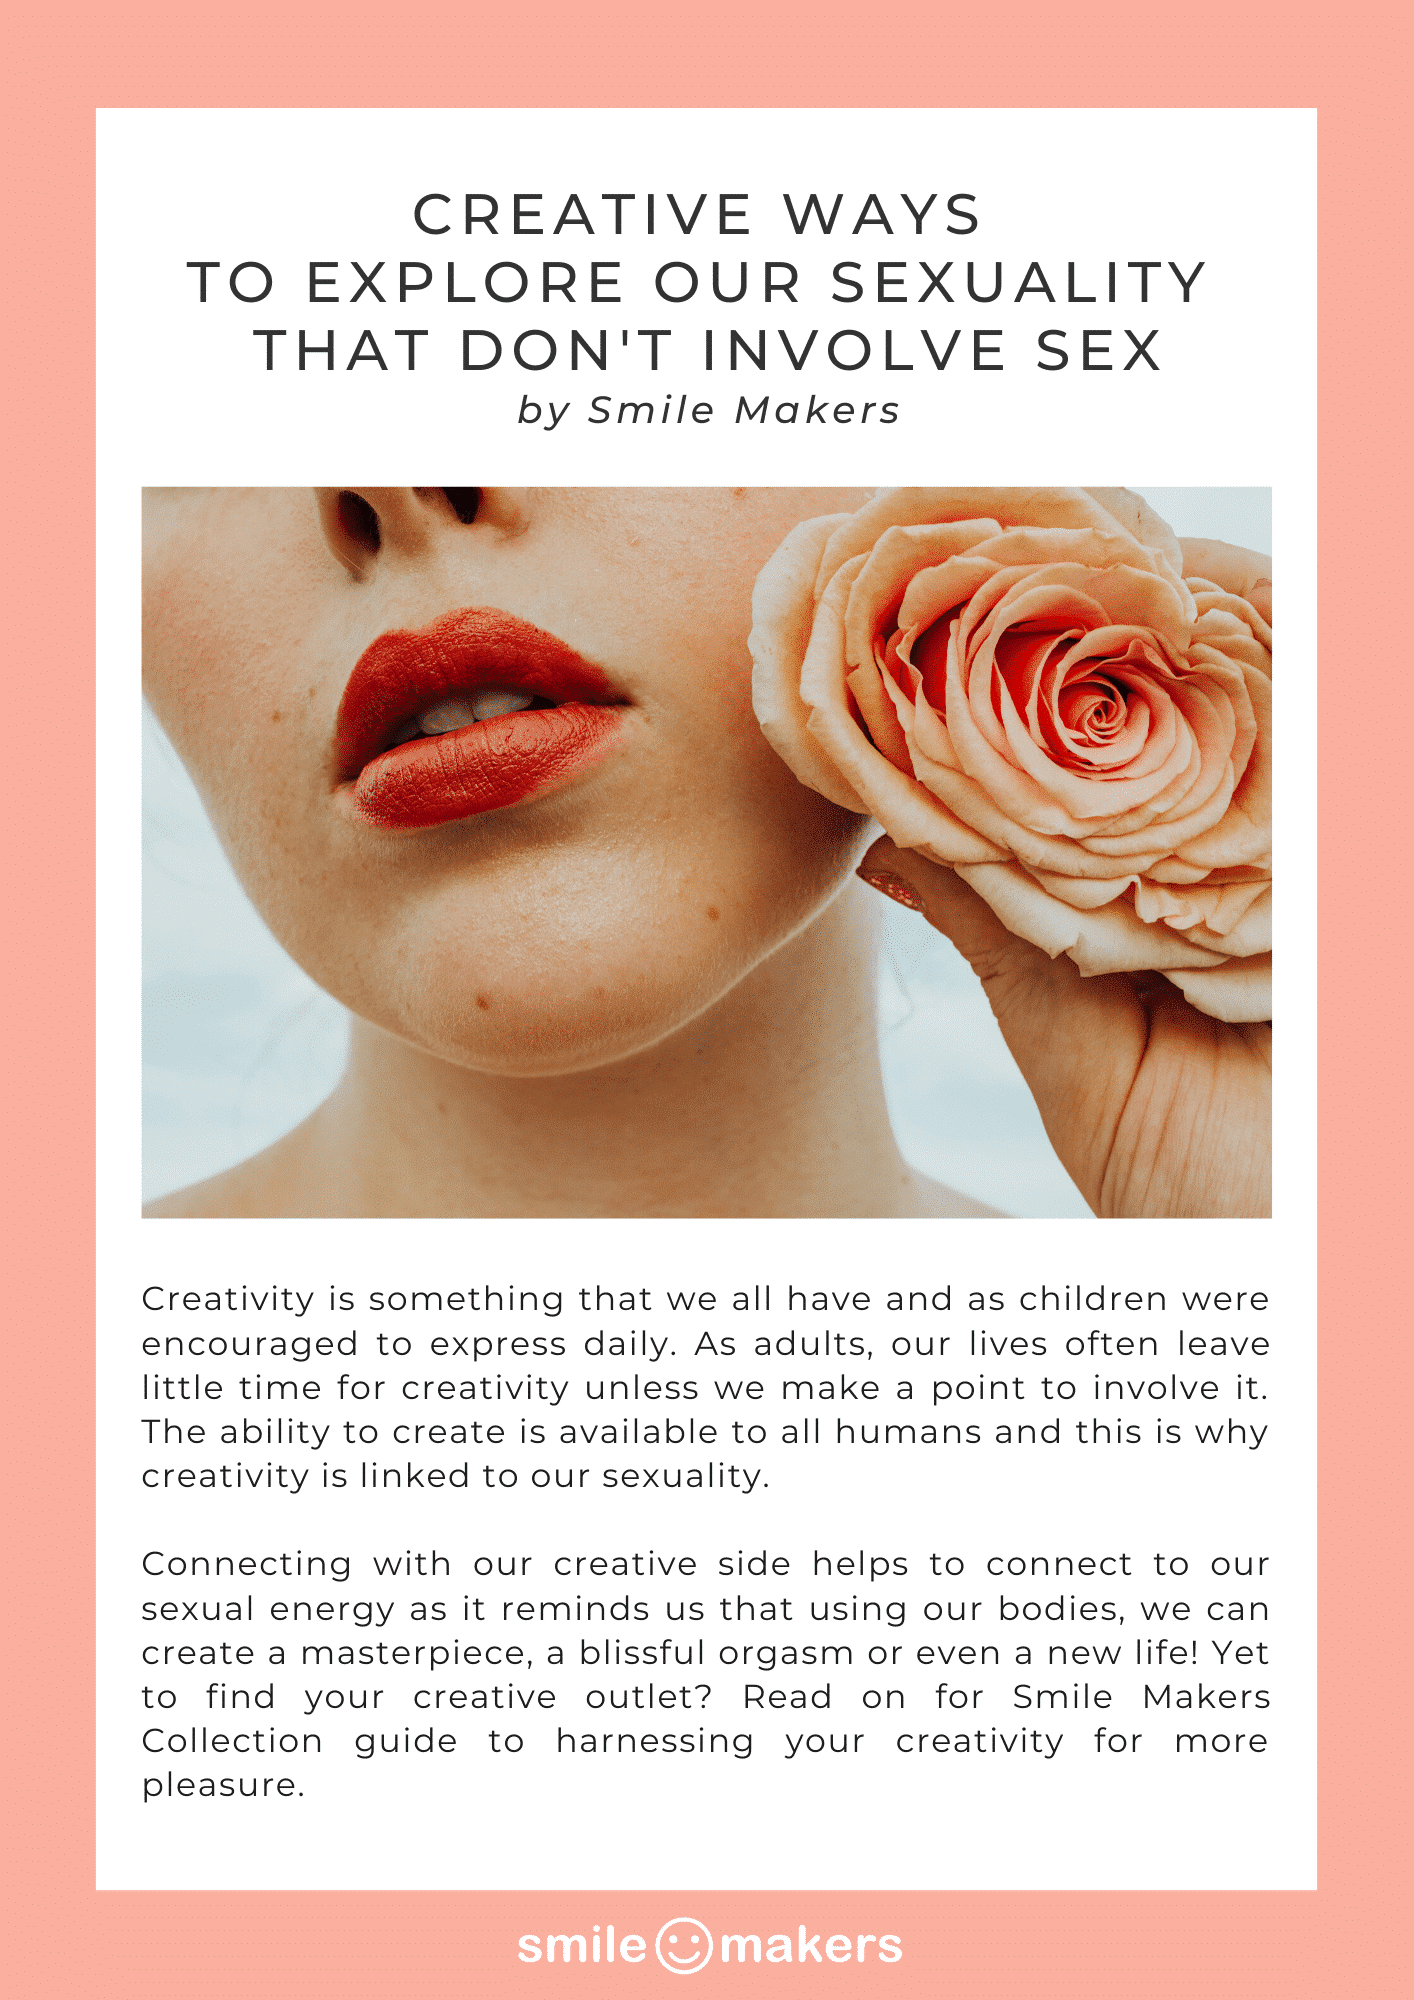 Creative Activities To Explore Our Sexuality